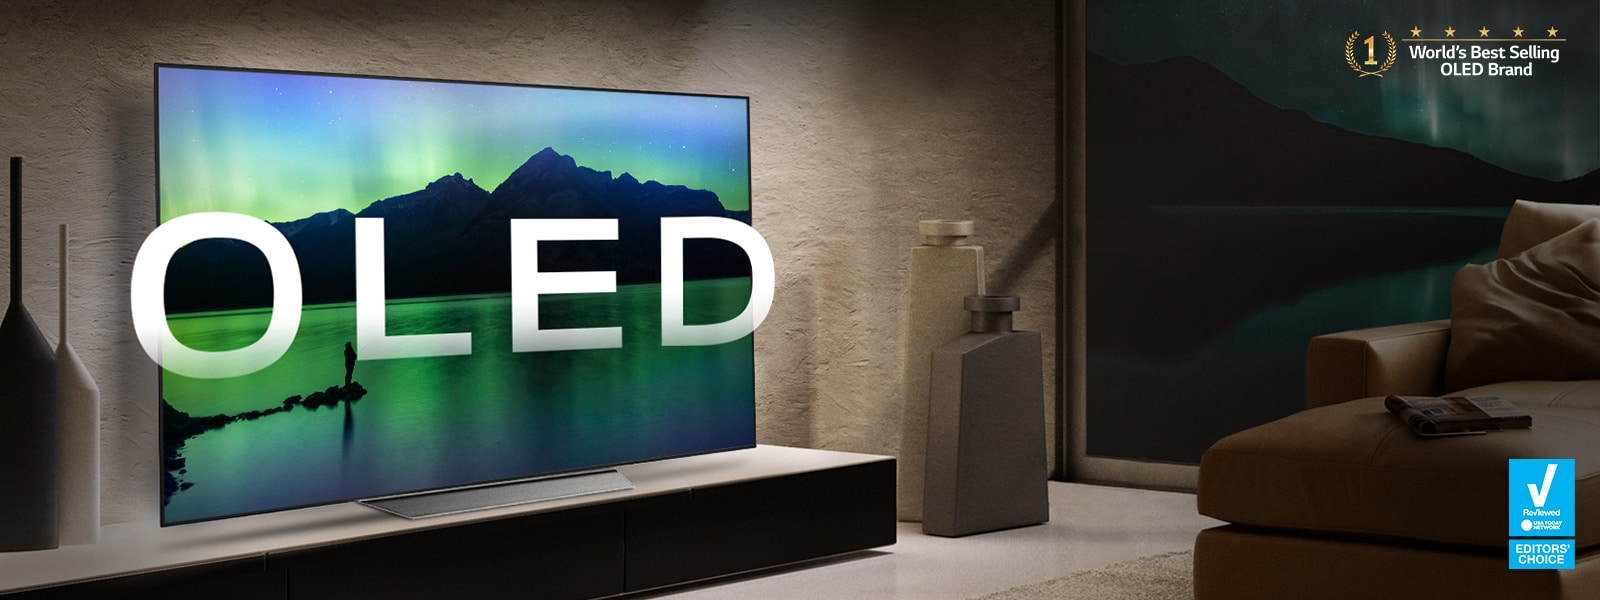 LG Latest TV's: Discover LG's Range of HD Televisions | LG